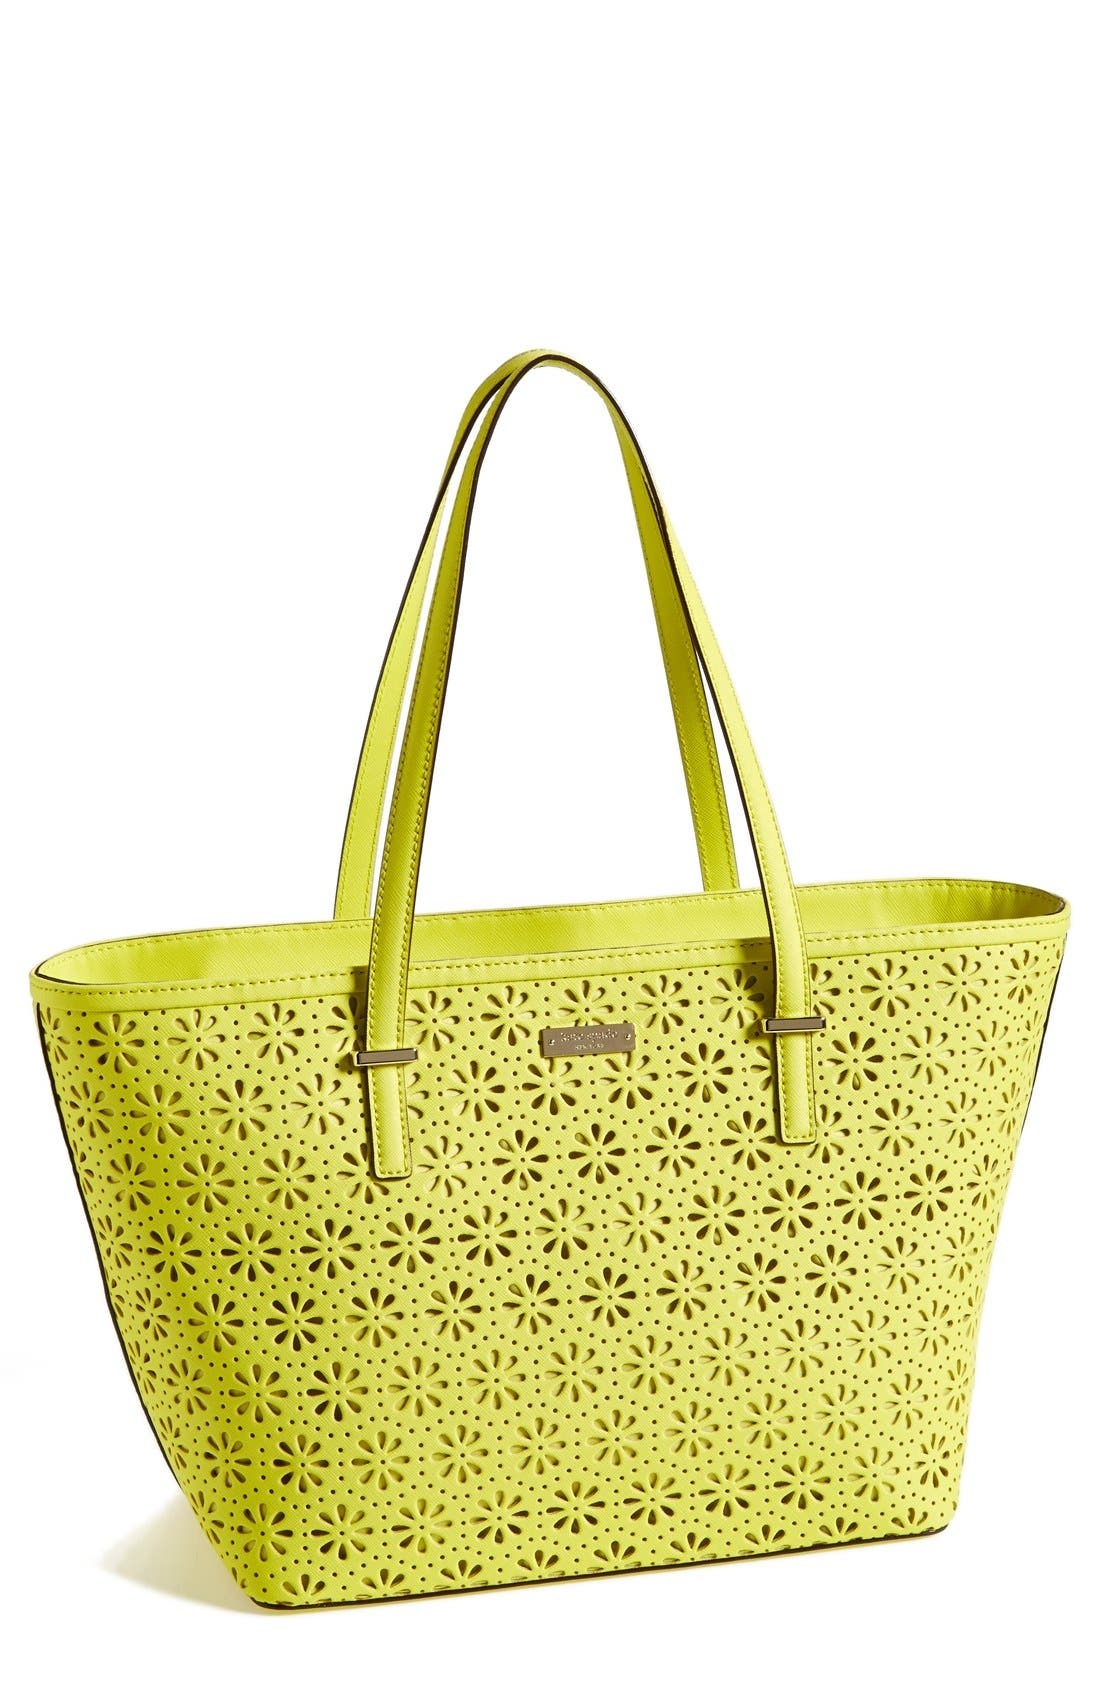 Alternate Image 1 Selected - kate spade new york 'small cedar street - harmony' perforated leather tote